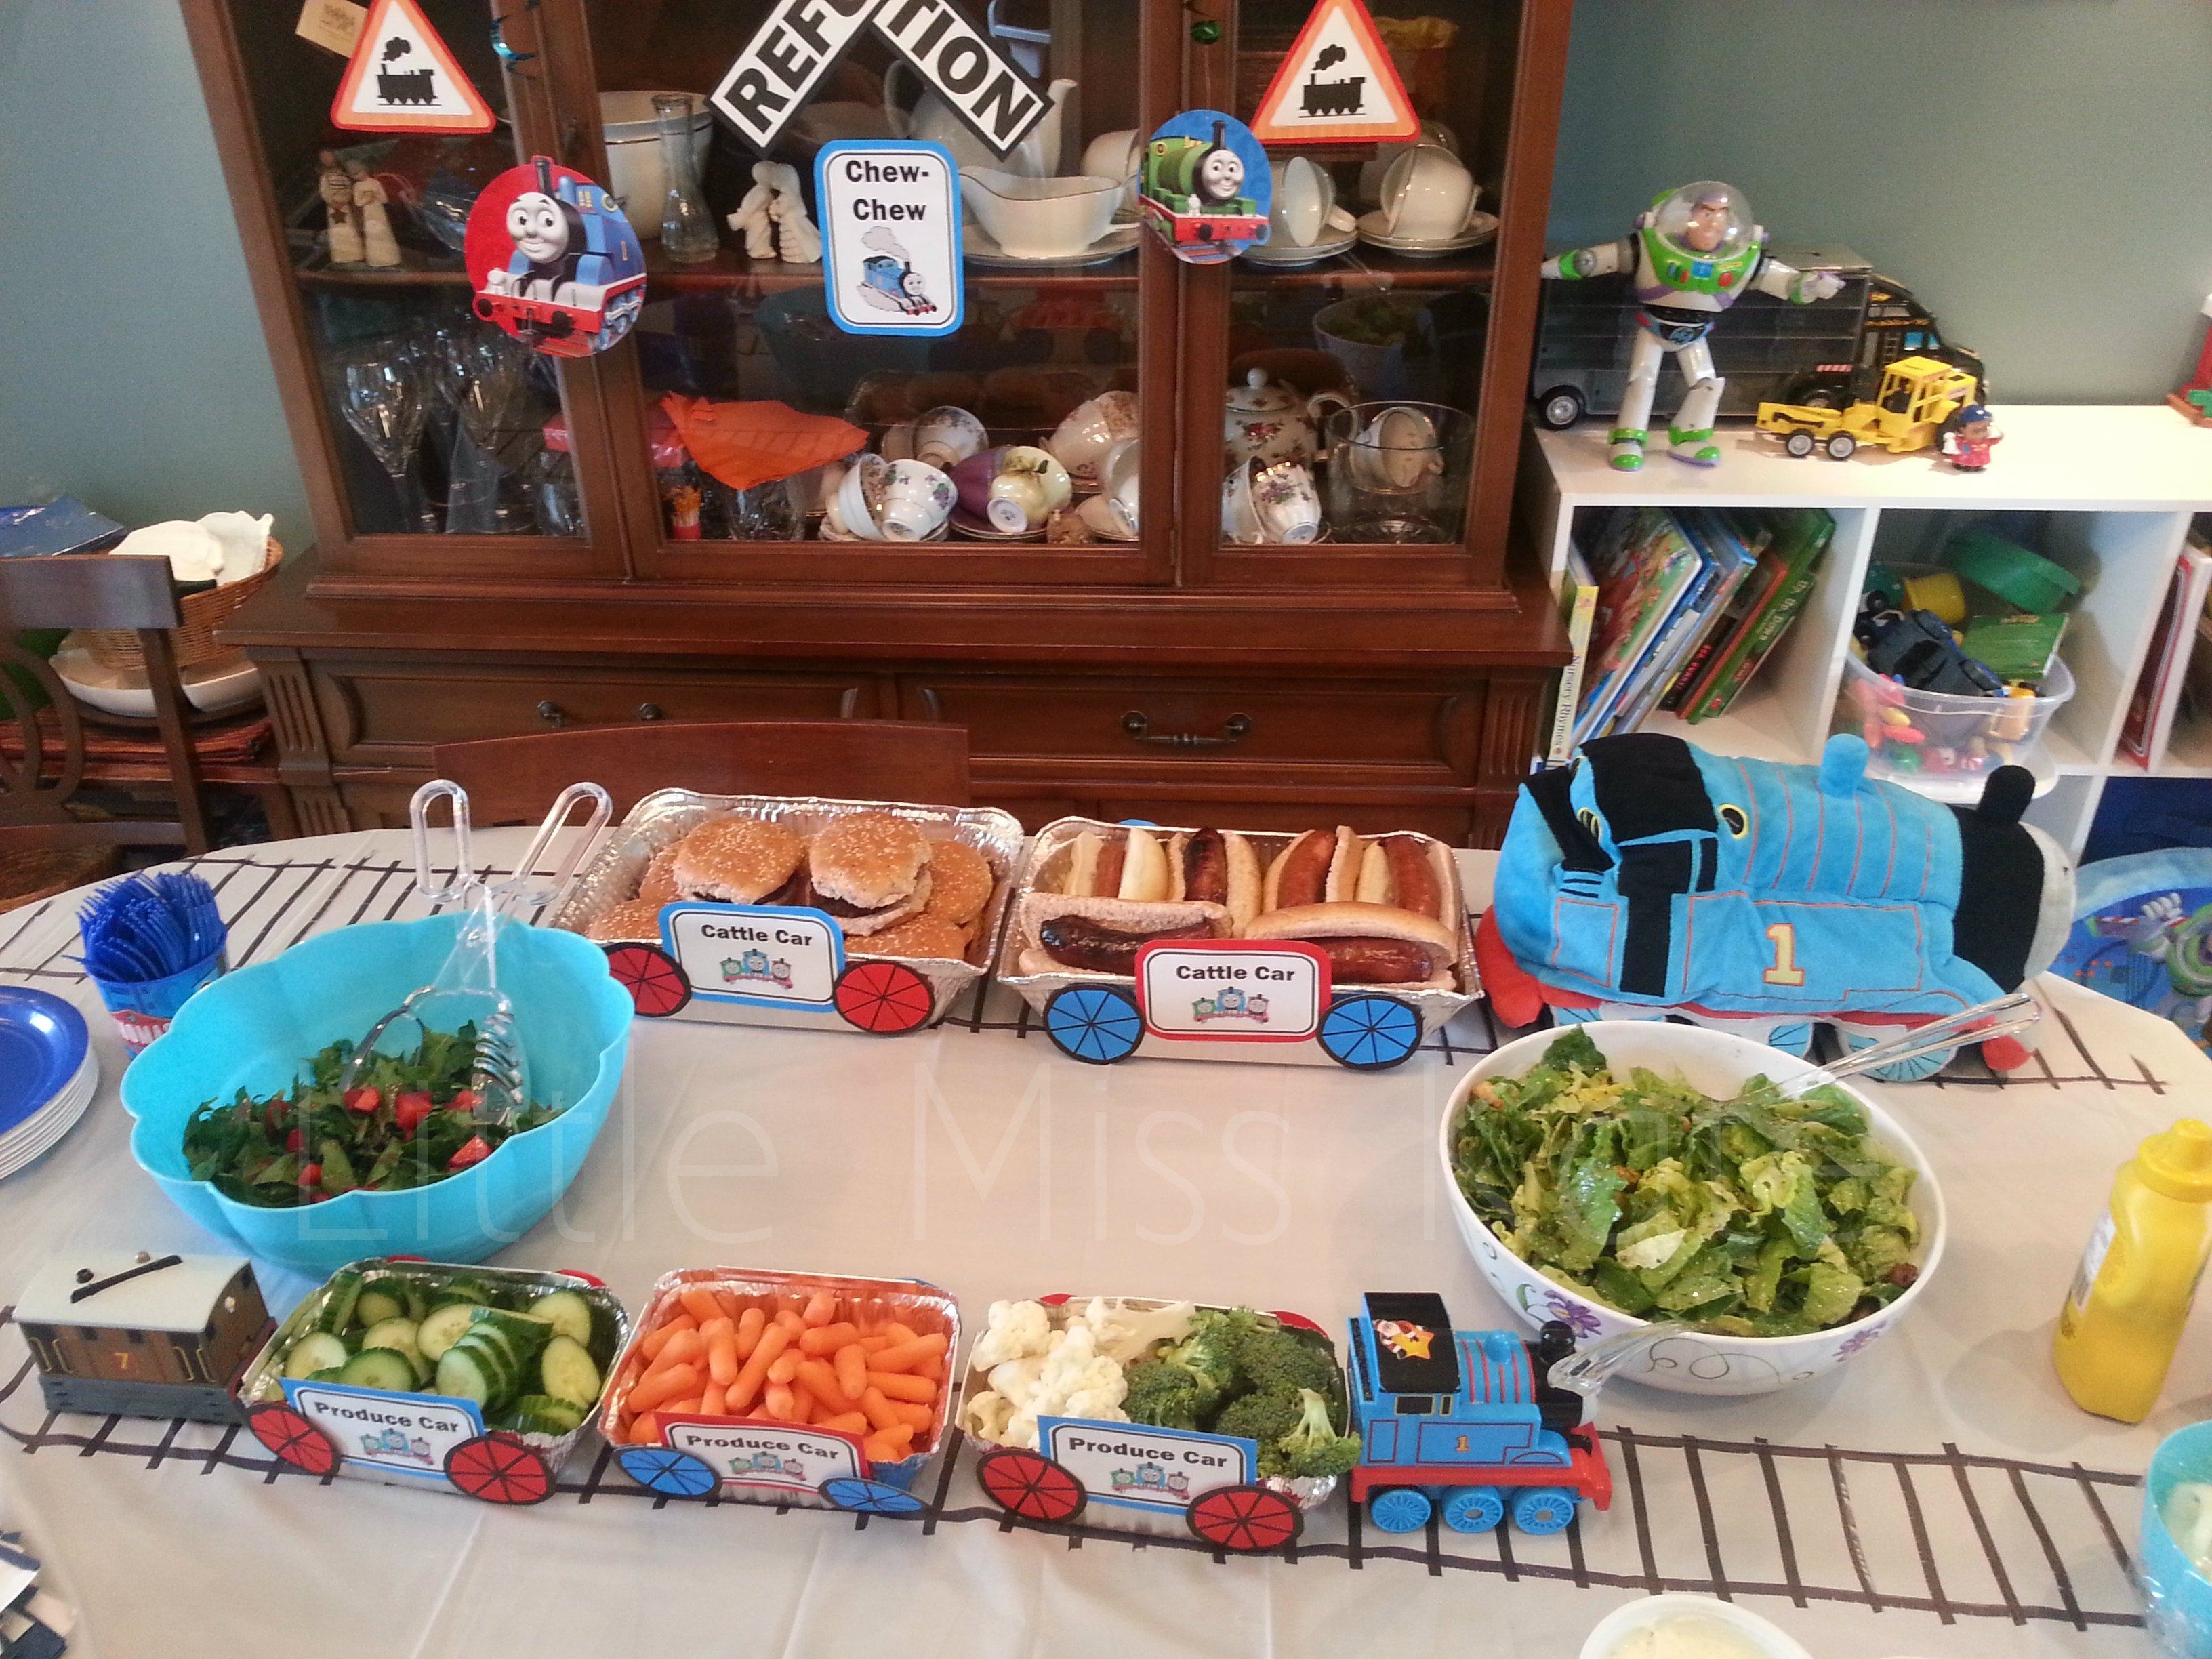 10 Most Recommended Thomas The Tank Engine Party Ideas kids birthday party ideas thomas the train party ideas little